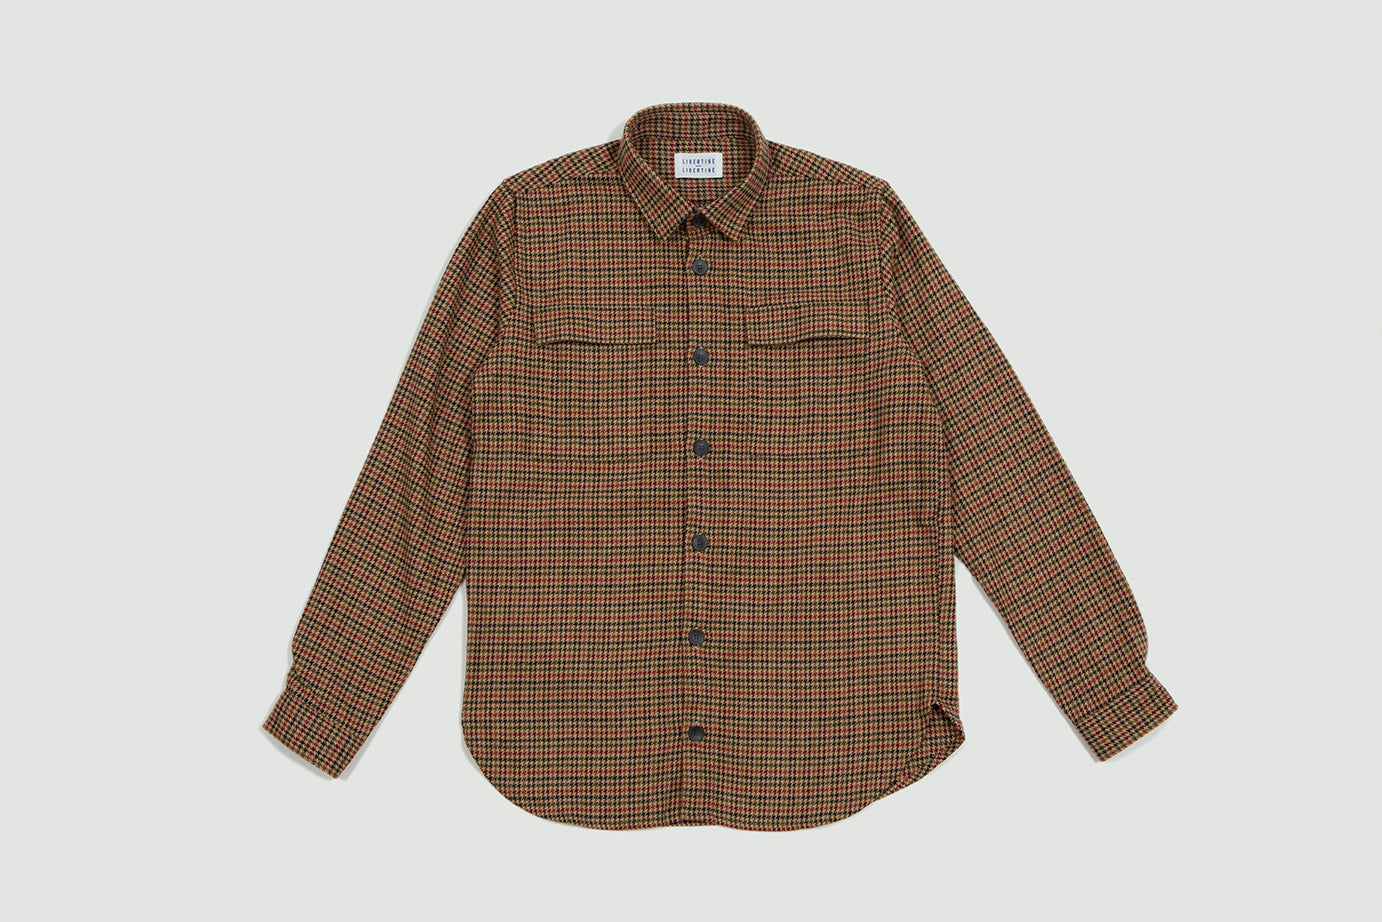 Libertine Libertine. Nation shirt red/navy/green